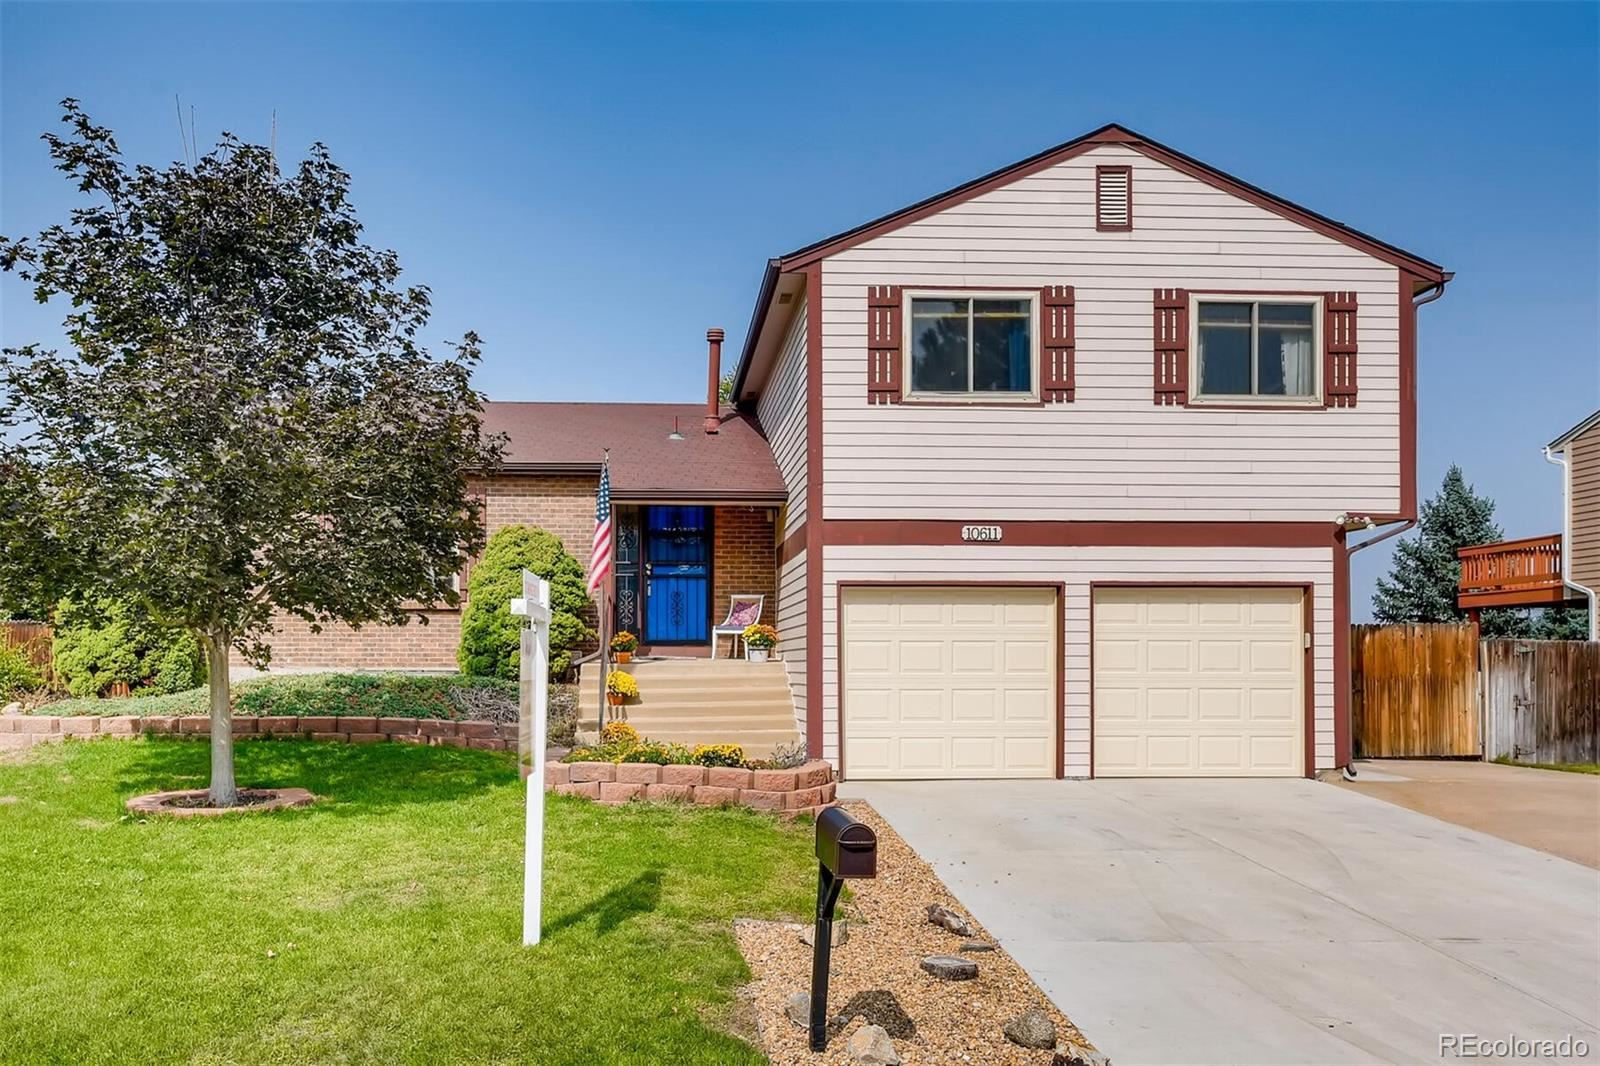 10611 W 105th Avenue, Westminster, CO 80021 - MLS#: 2331789